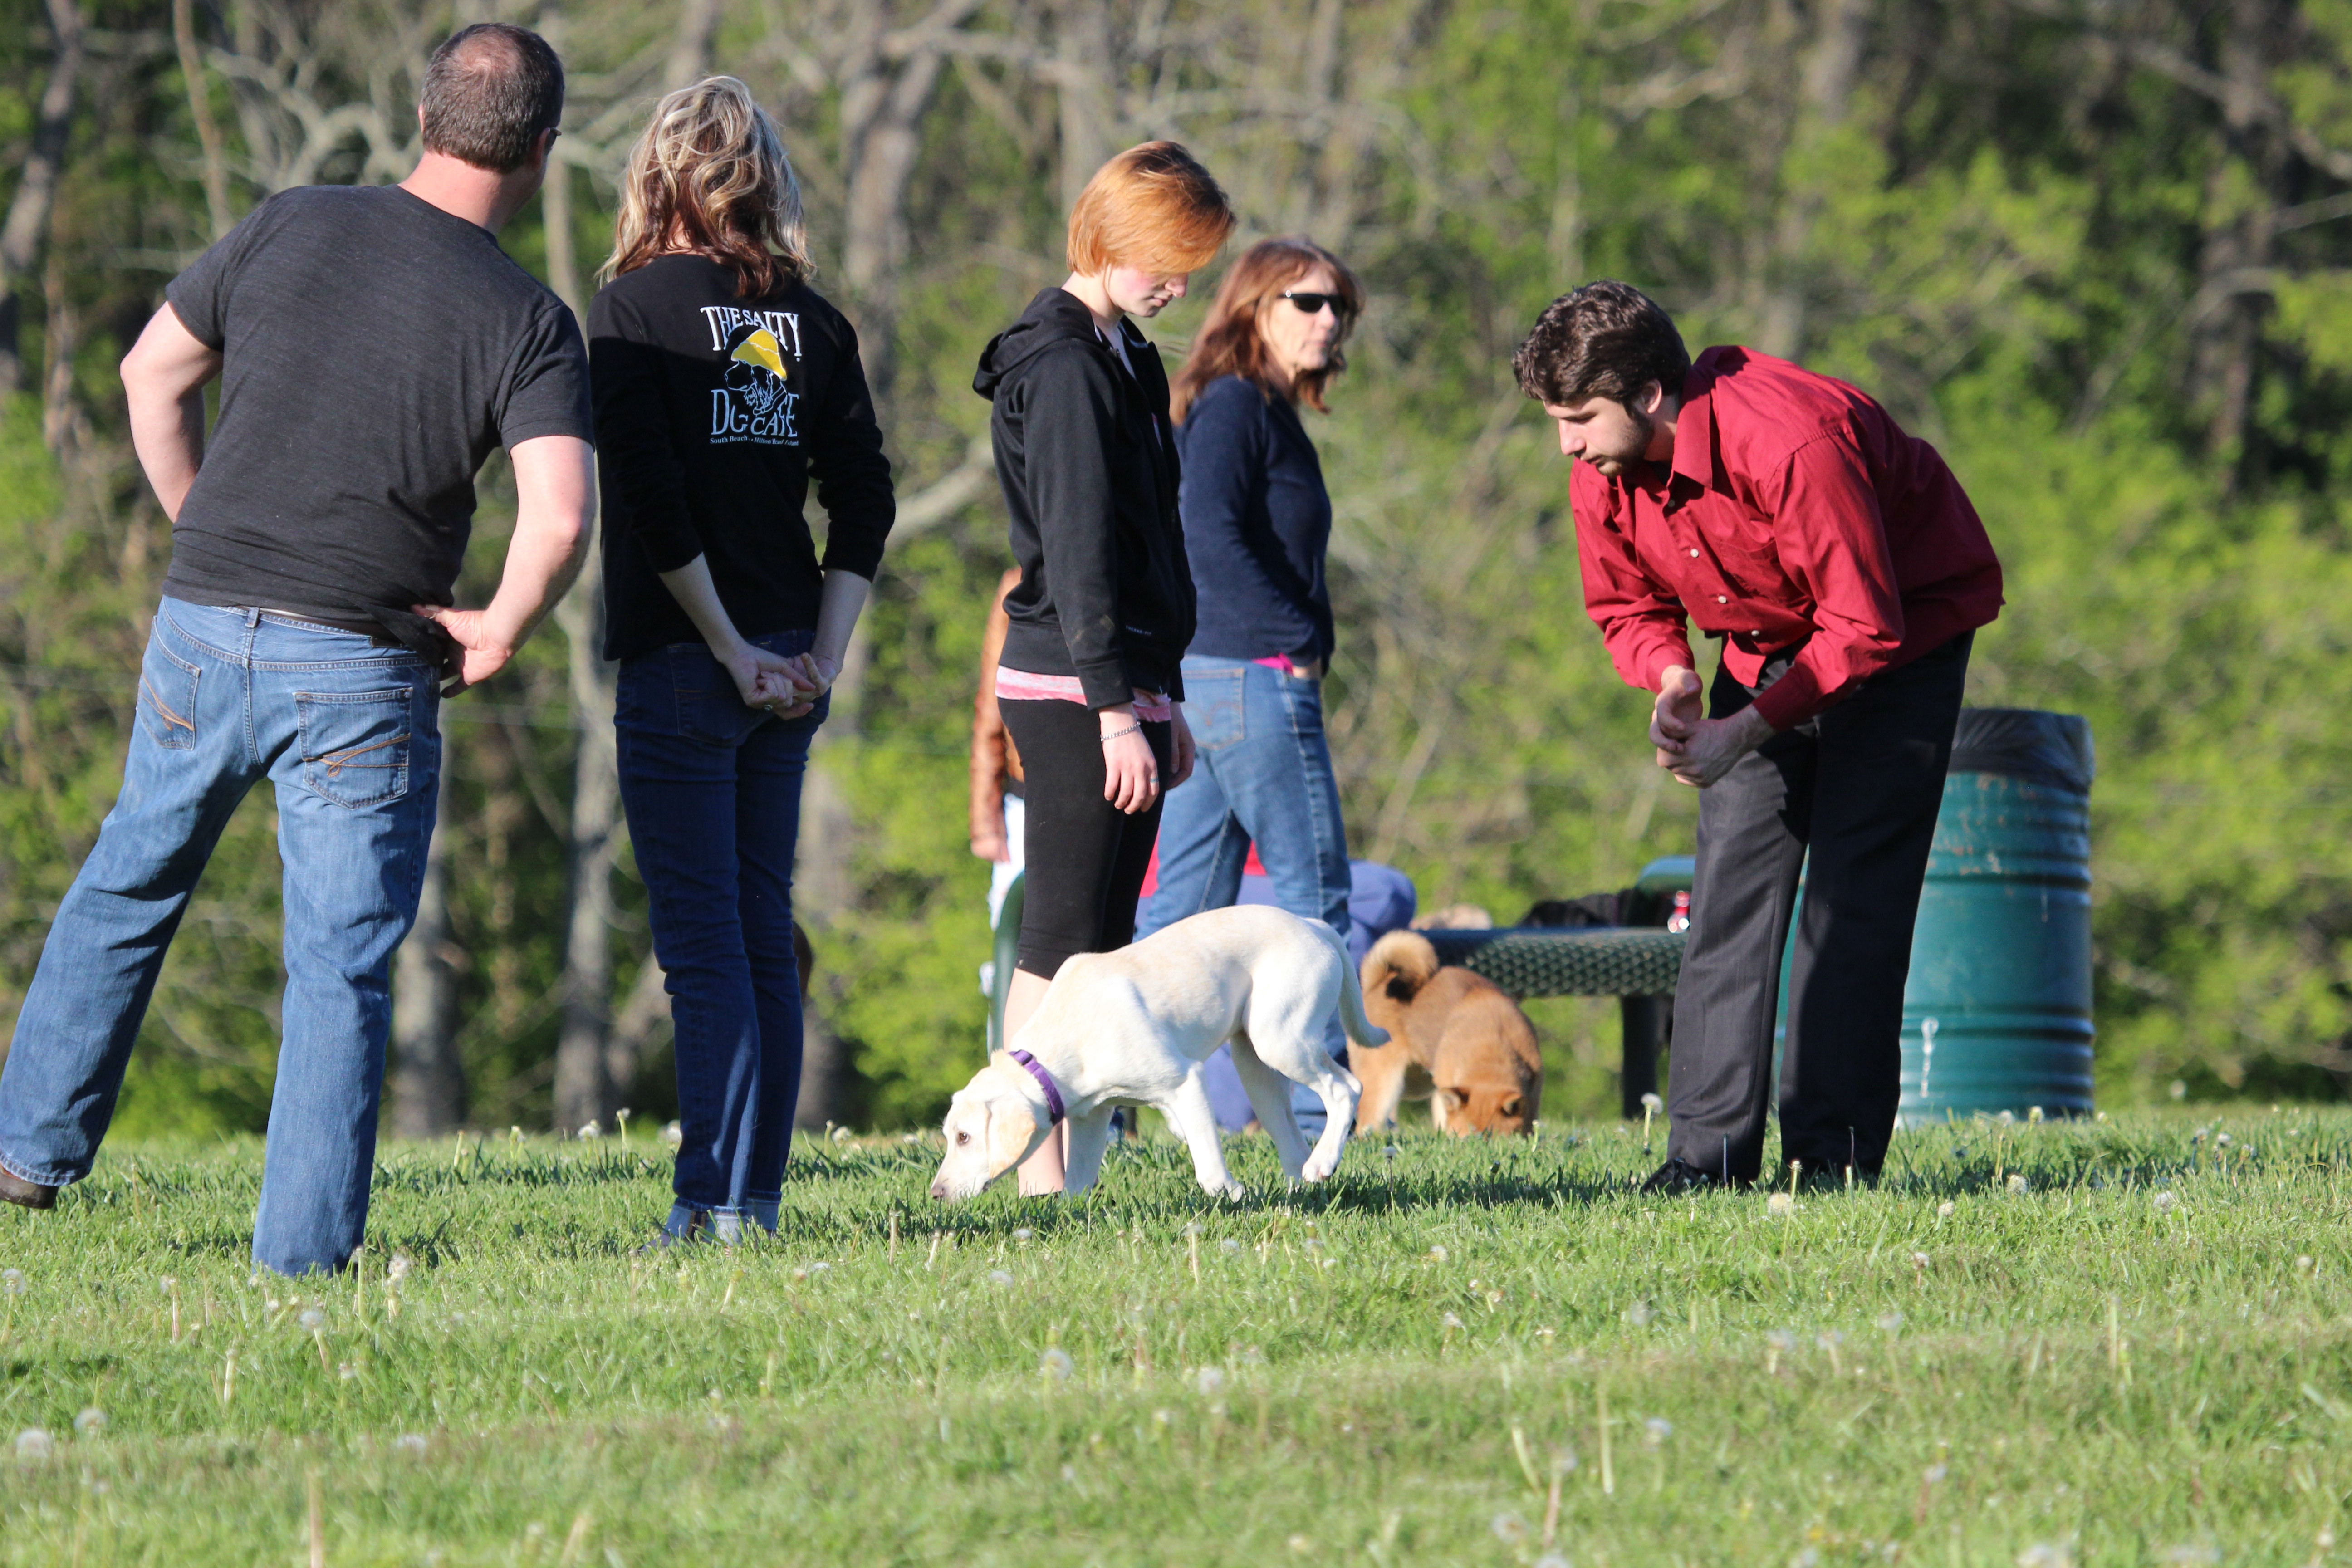 Lexington, Kentucky, United States - April 26, 2015:  Group of people playing with their dogs at Jacobson Park in Lexington, Kentucky.